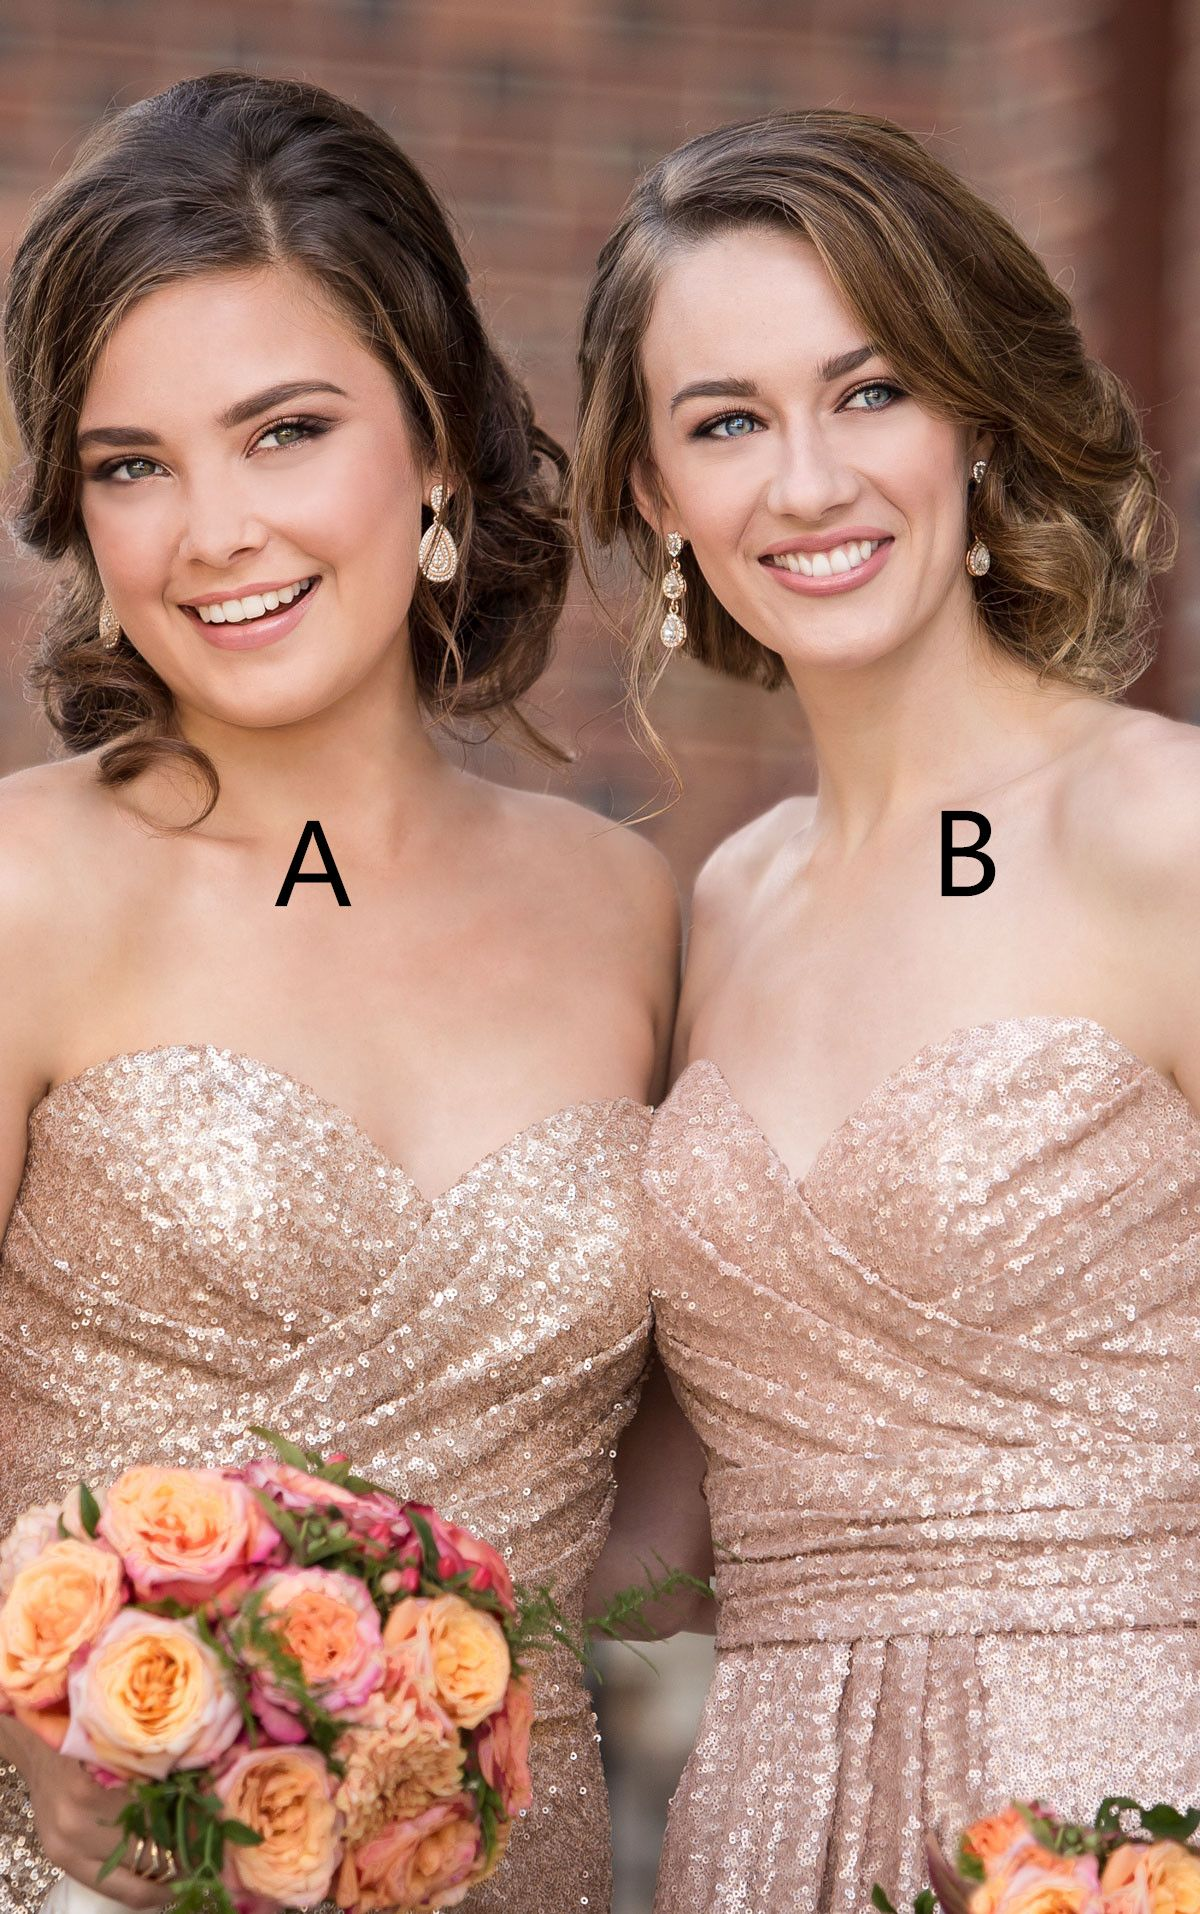 Sparkly strapless rose gold long sequins bridesmaid dress from sparkly strapless rose gold long sequins bridesmaid dress thumbnail 3 ombrellifo Choice Image